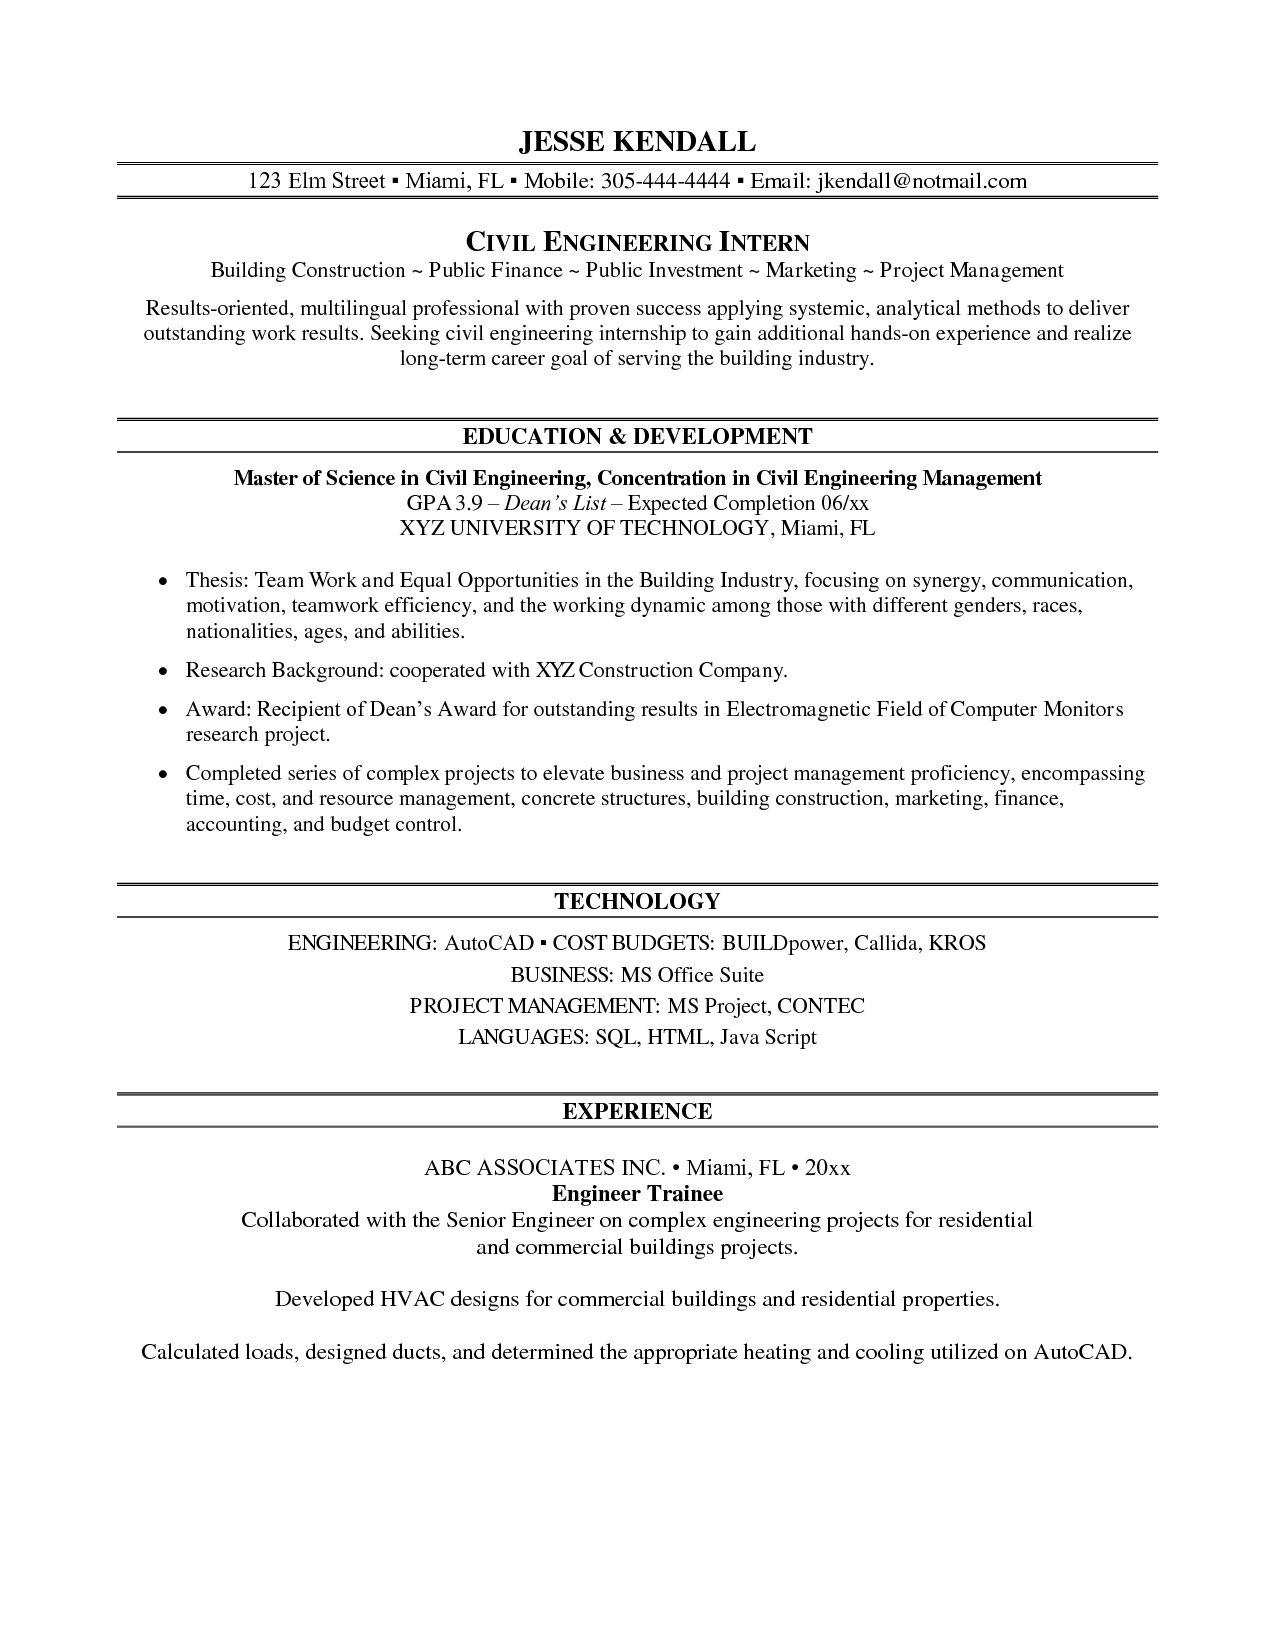 Internship Resume Template Microsoft Word Internship On Resume Best Template Collection  Httpwww